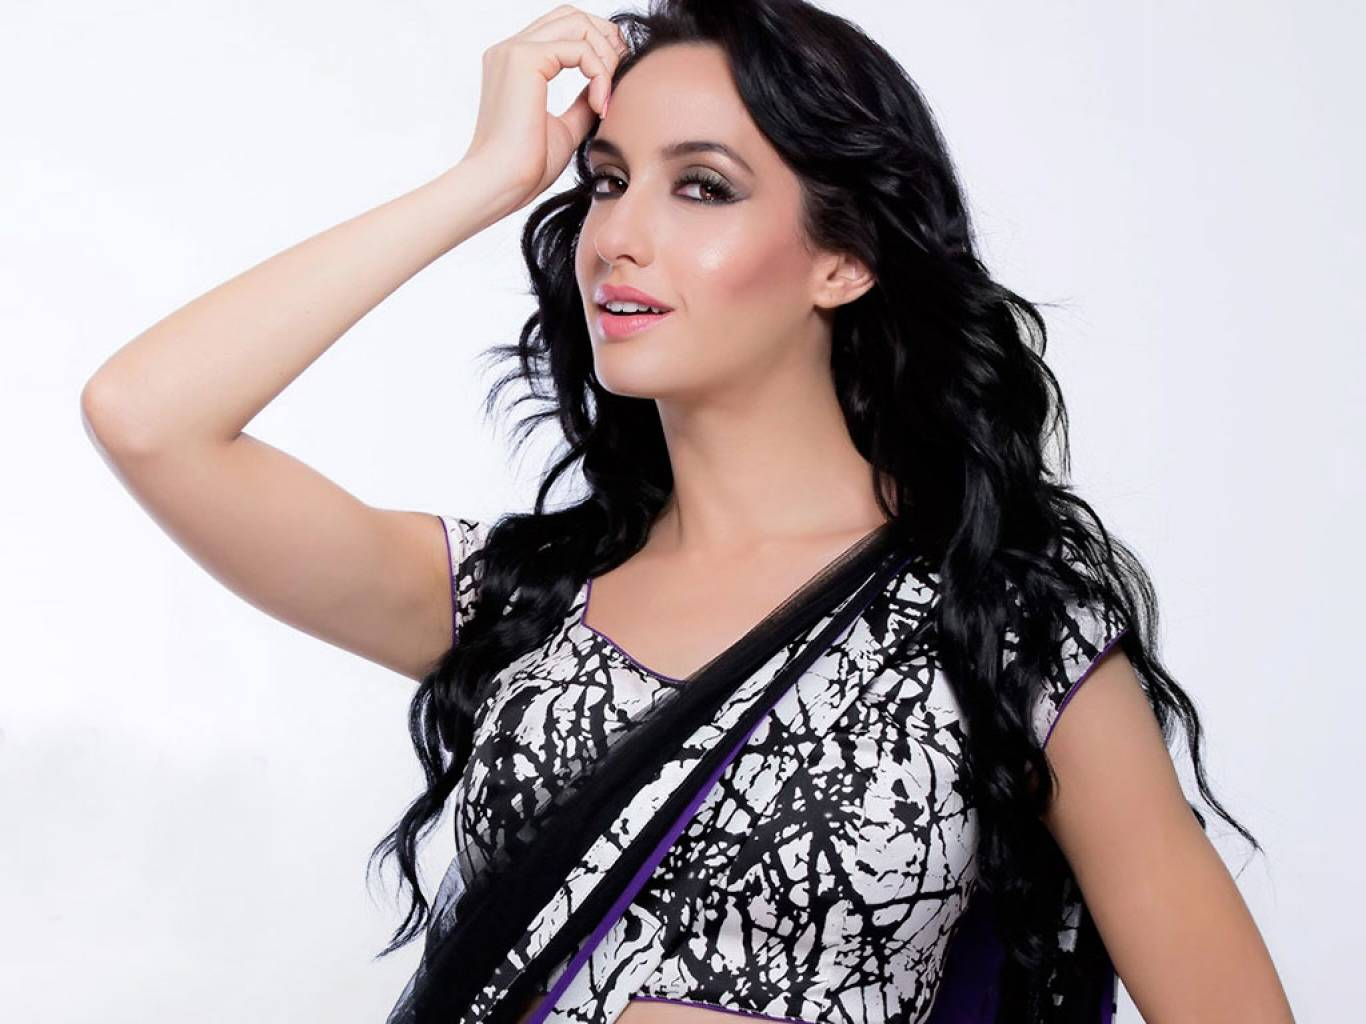 Nora Fatehi Wallpapers  IMAGES, GIF, ANIMATED GIF, WALLPAPER, STICKER FOR WHATSAPP & FACEBOOK